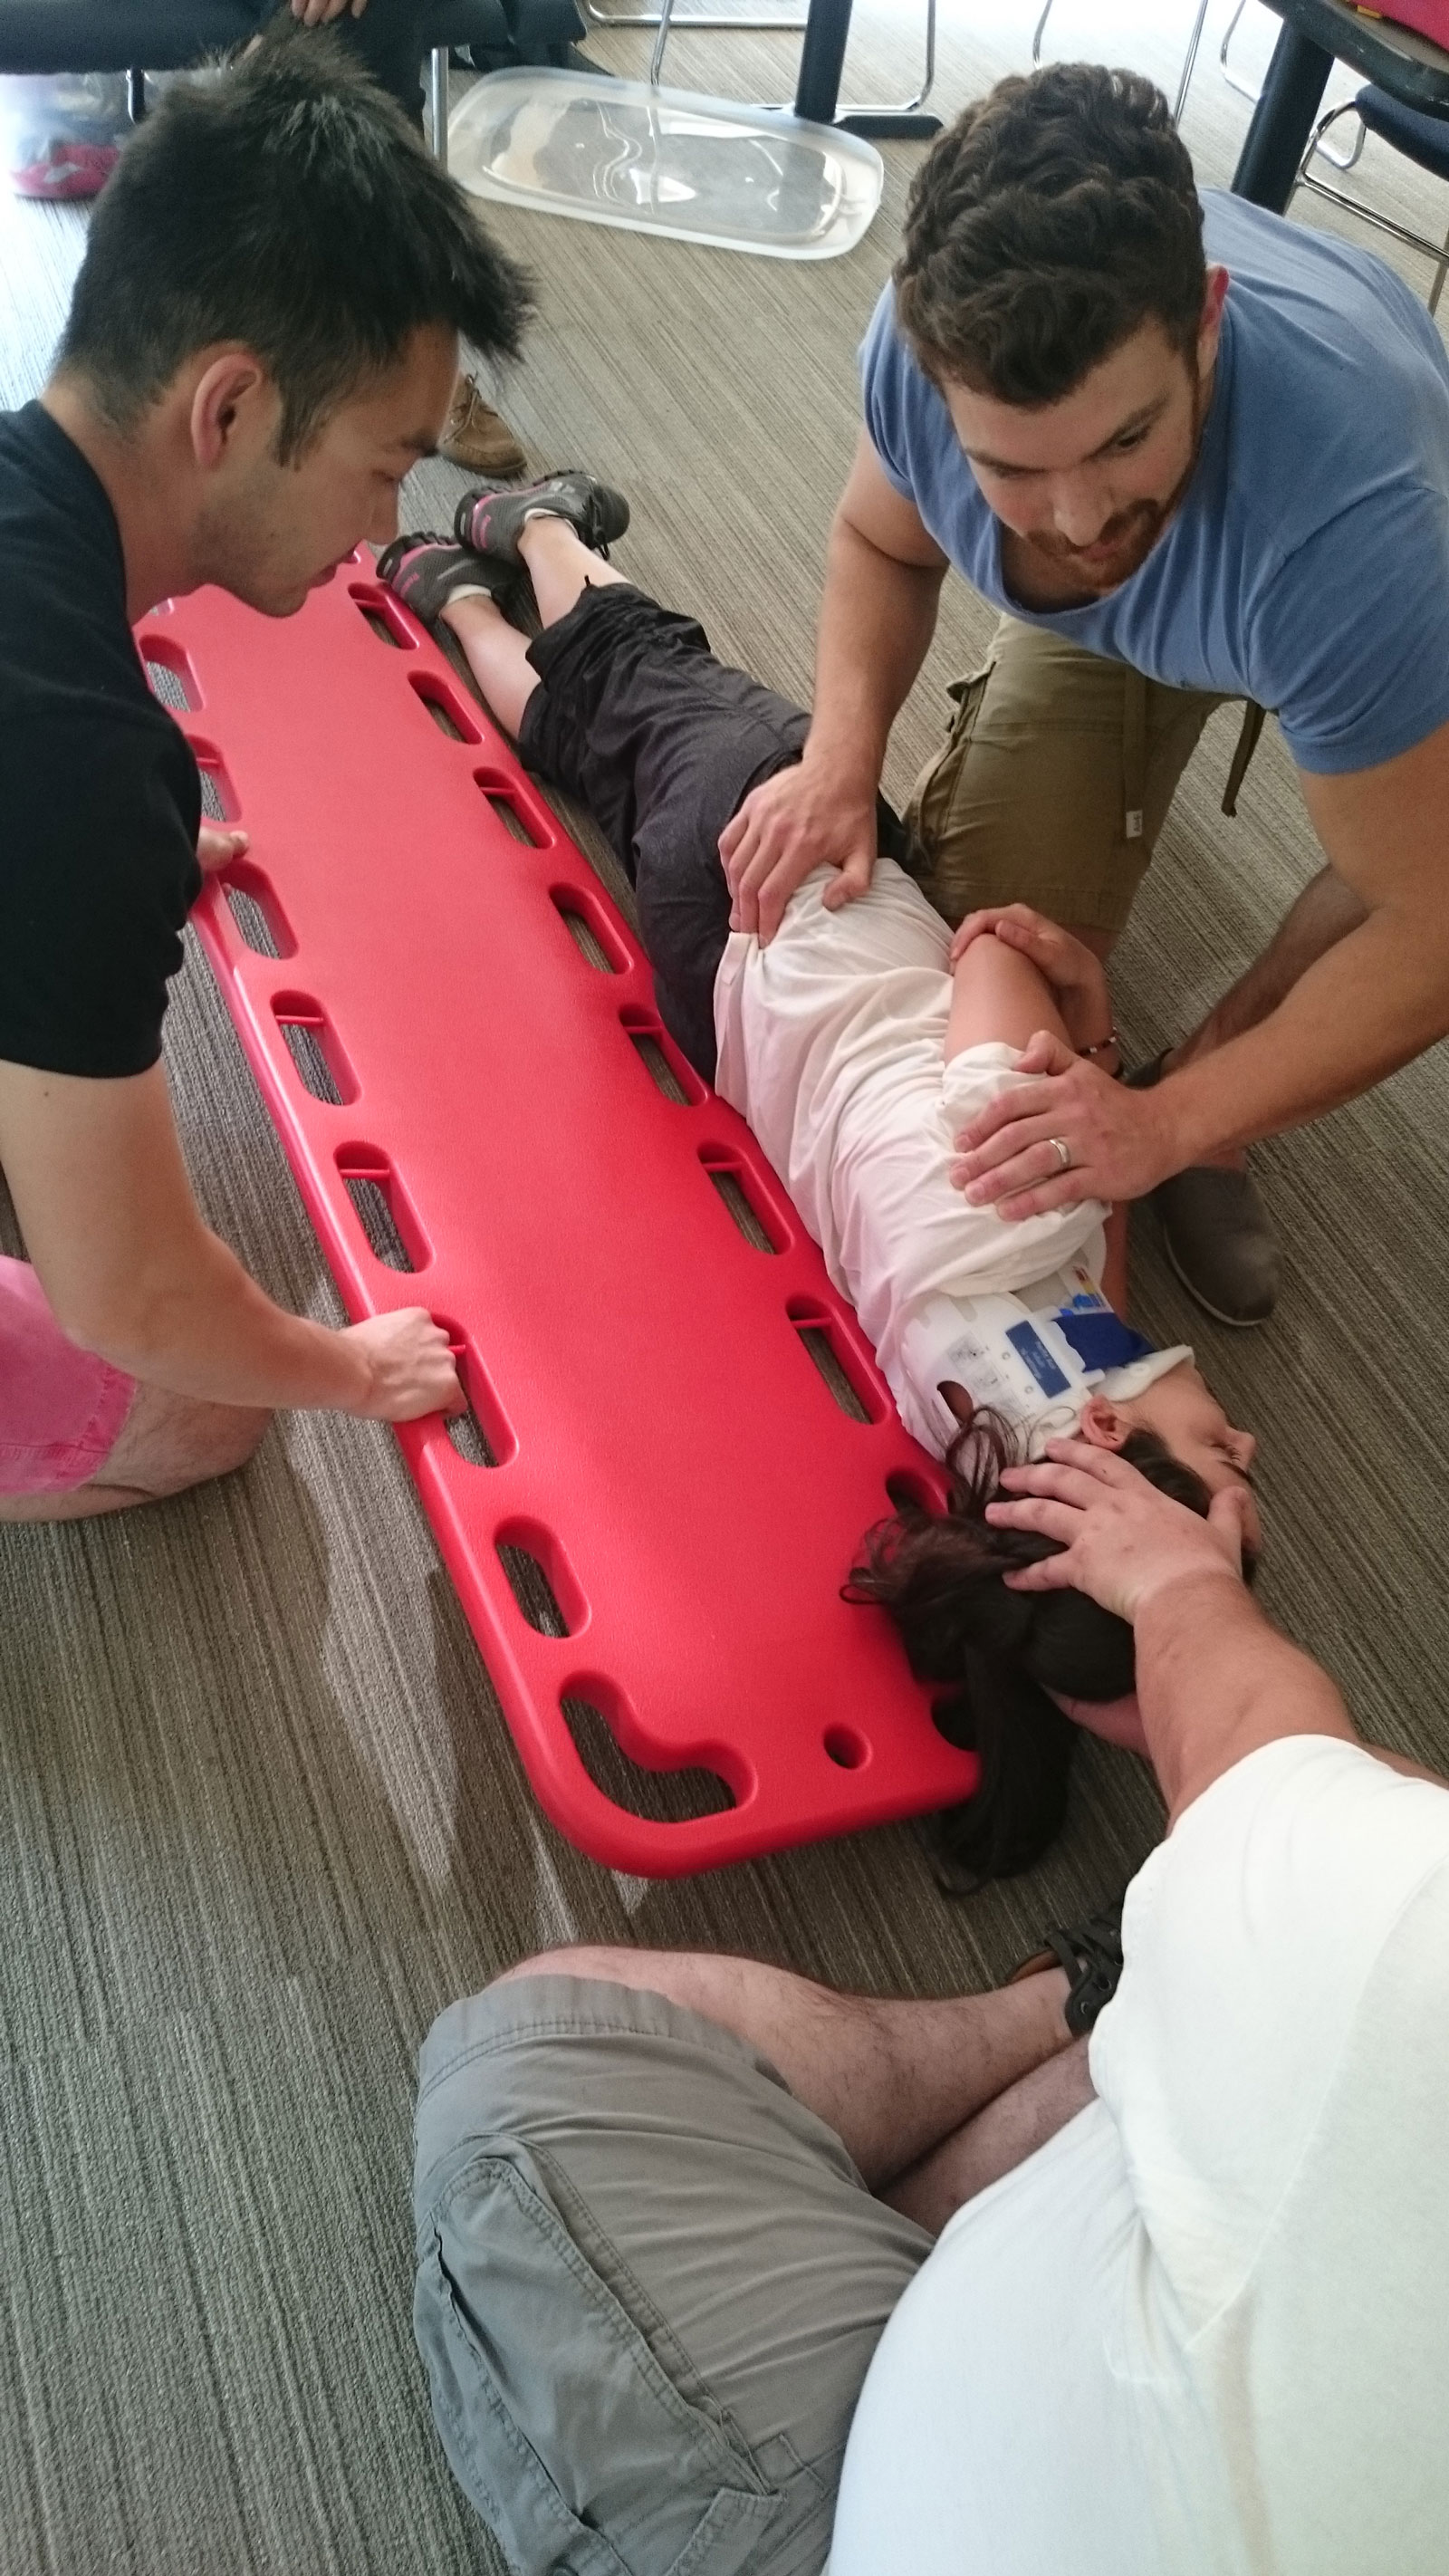 Emergency first aid cpr c standard first aid cpr c first responder cpr